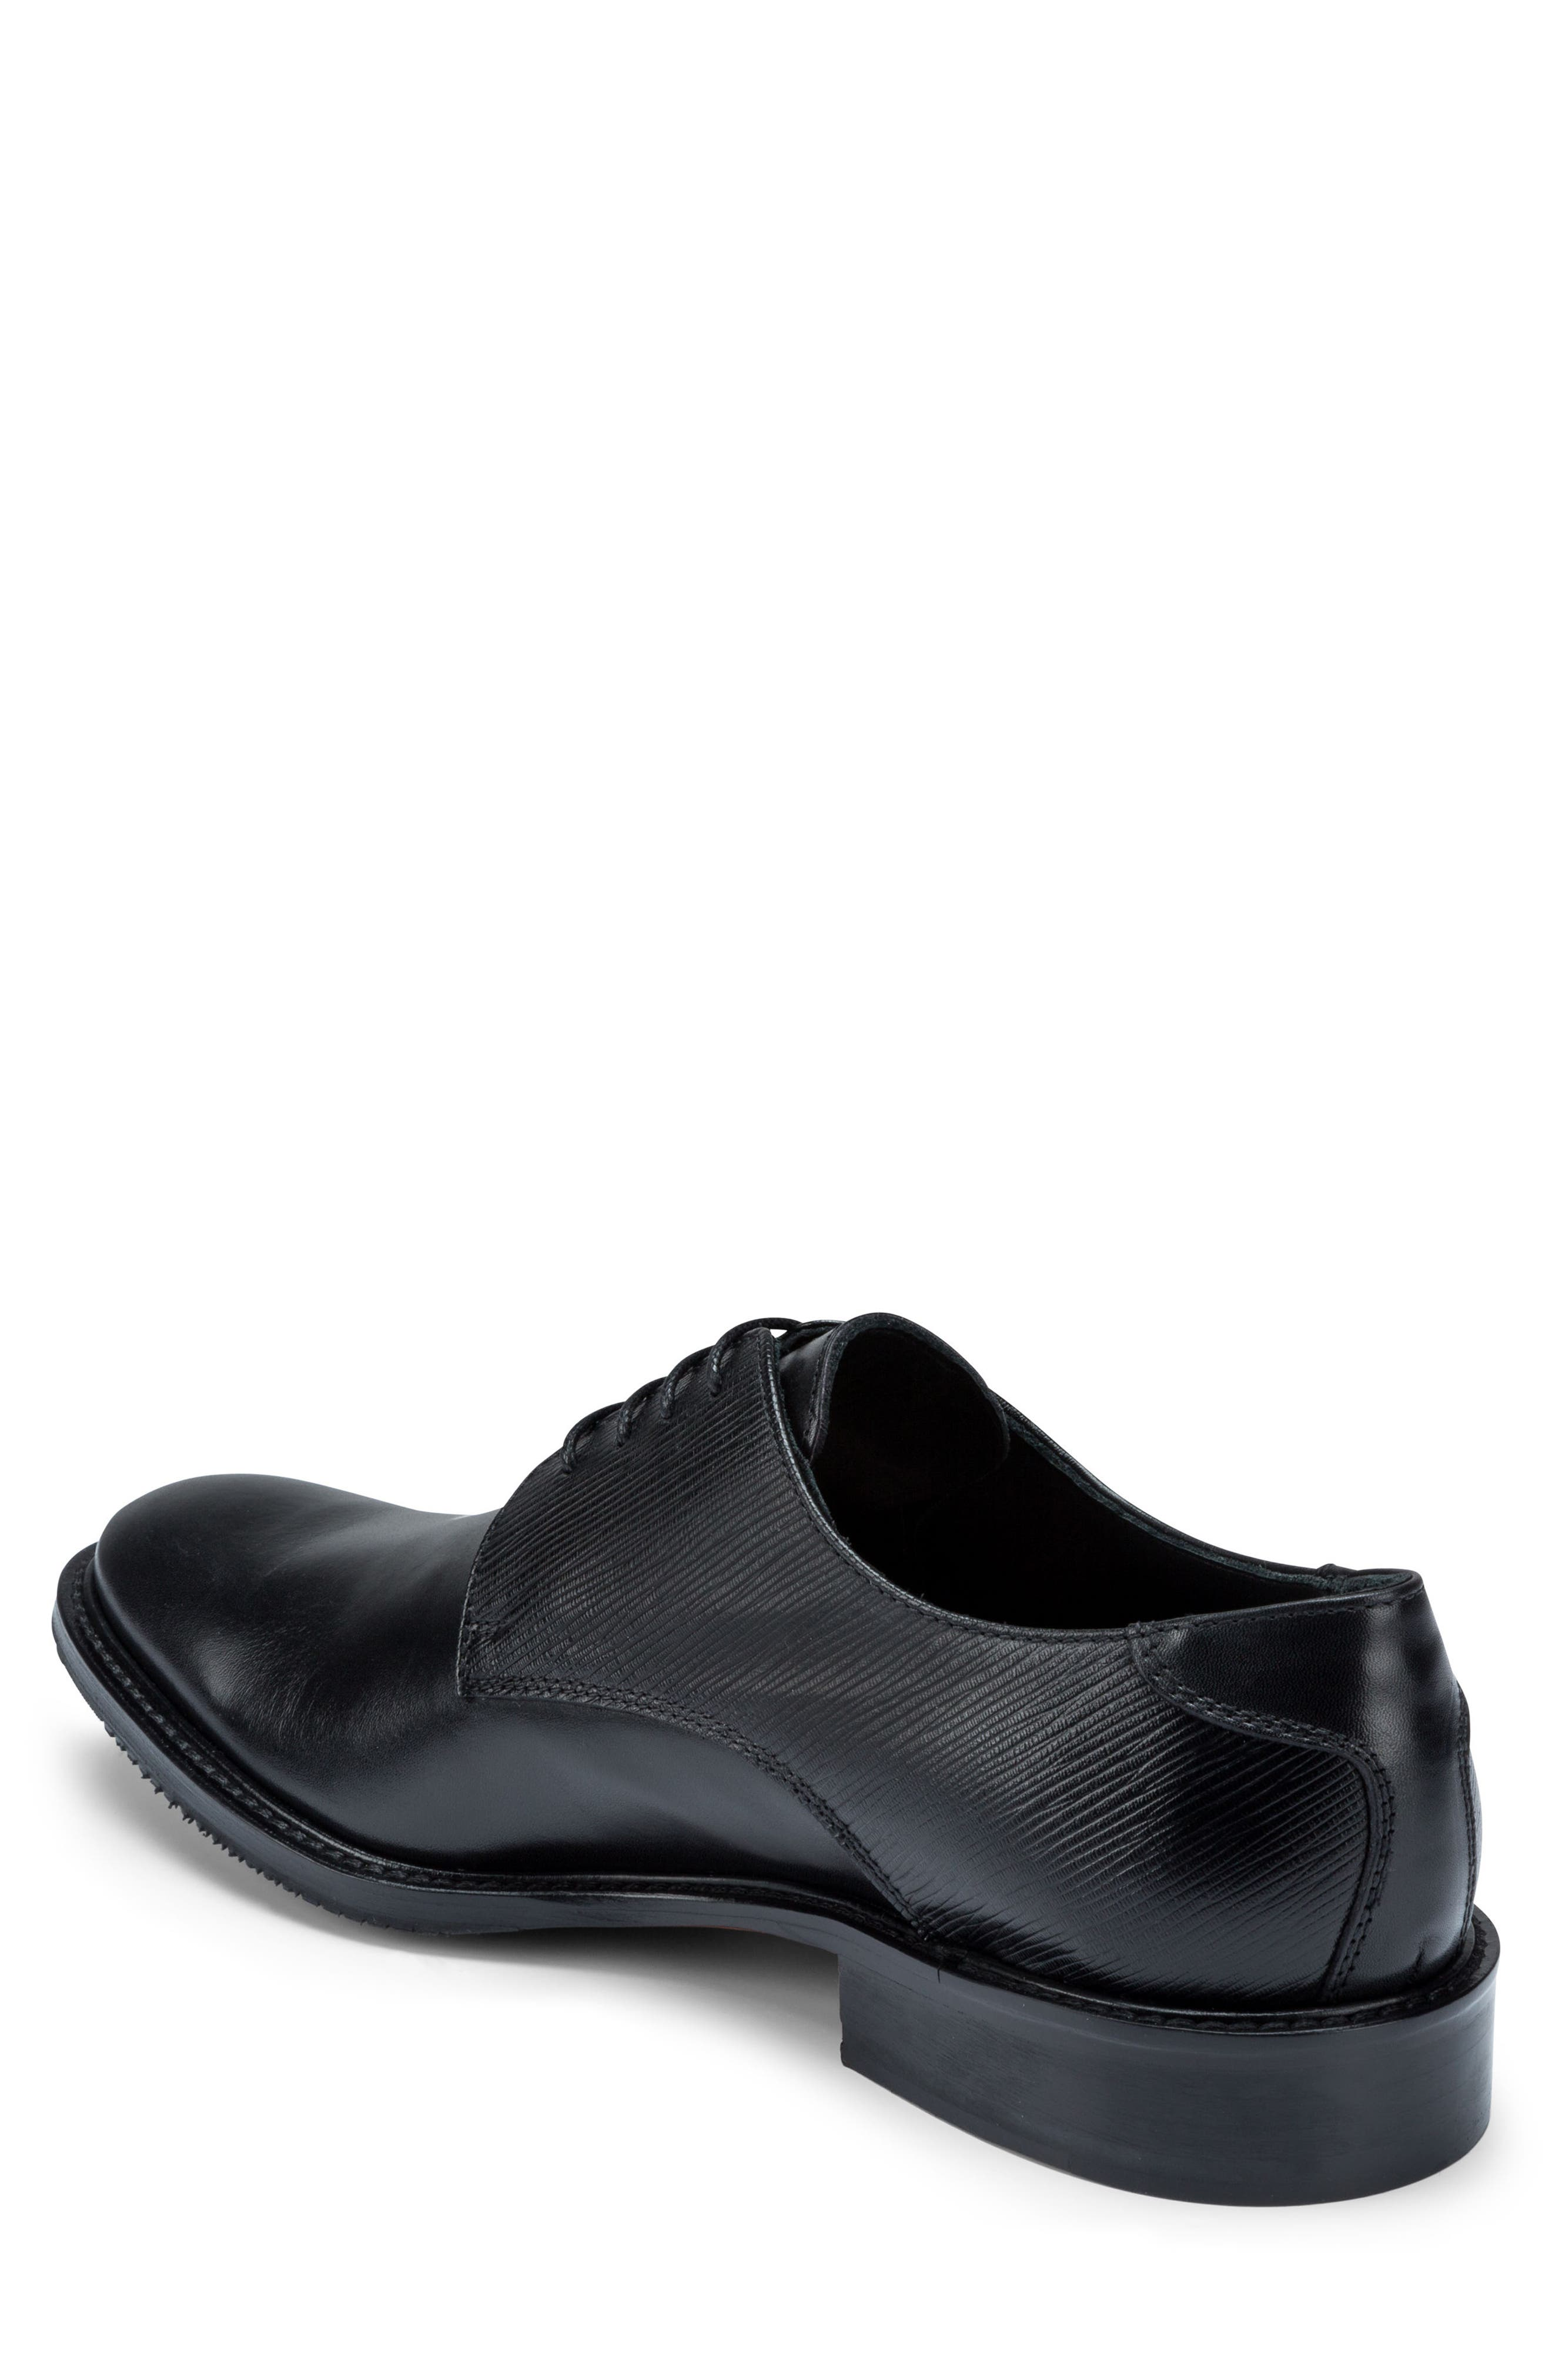 Sorrento Plain Toe Derby,                             Alternate thumbnail 2, color,                             Nero Leather